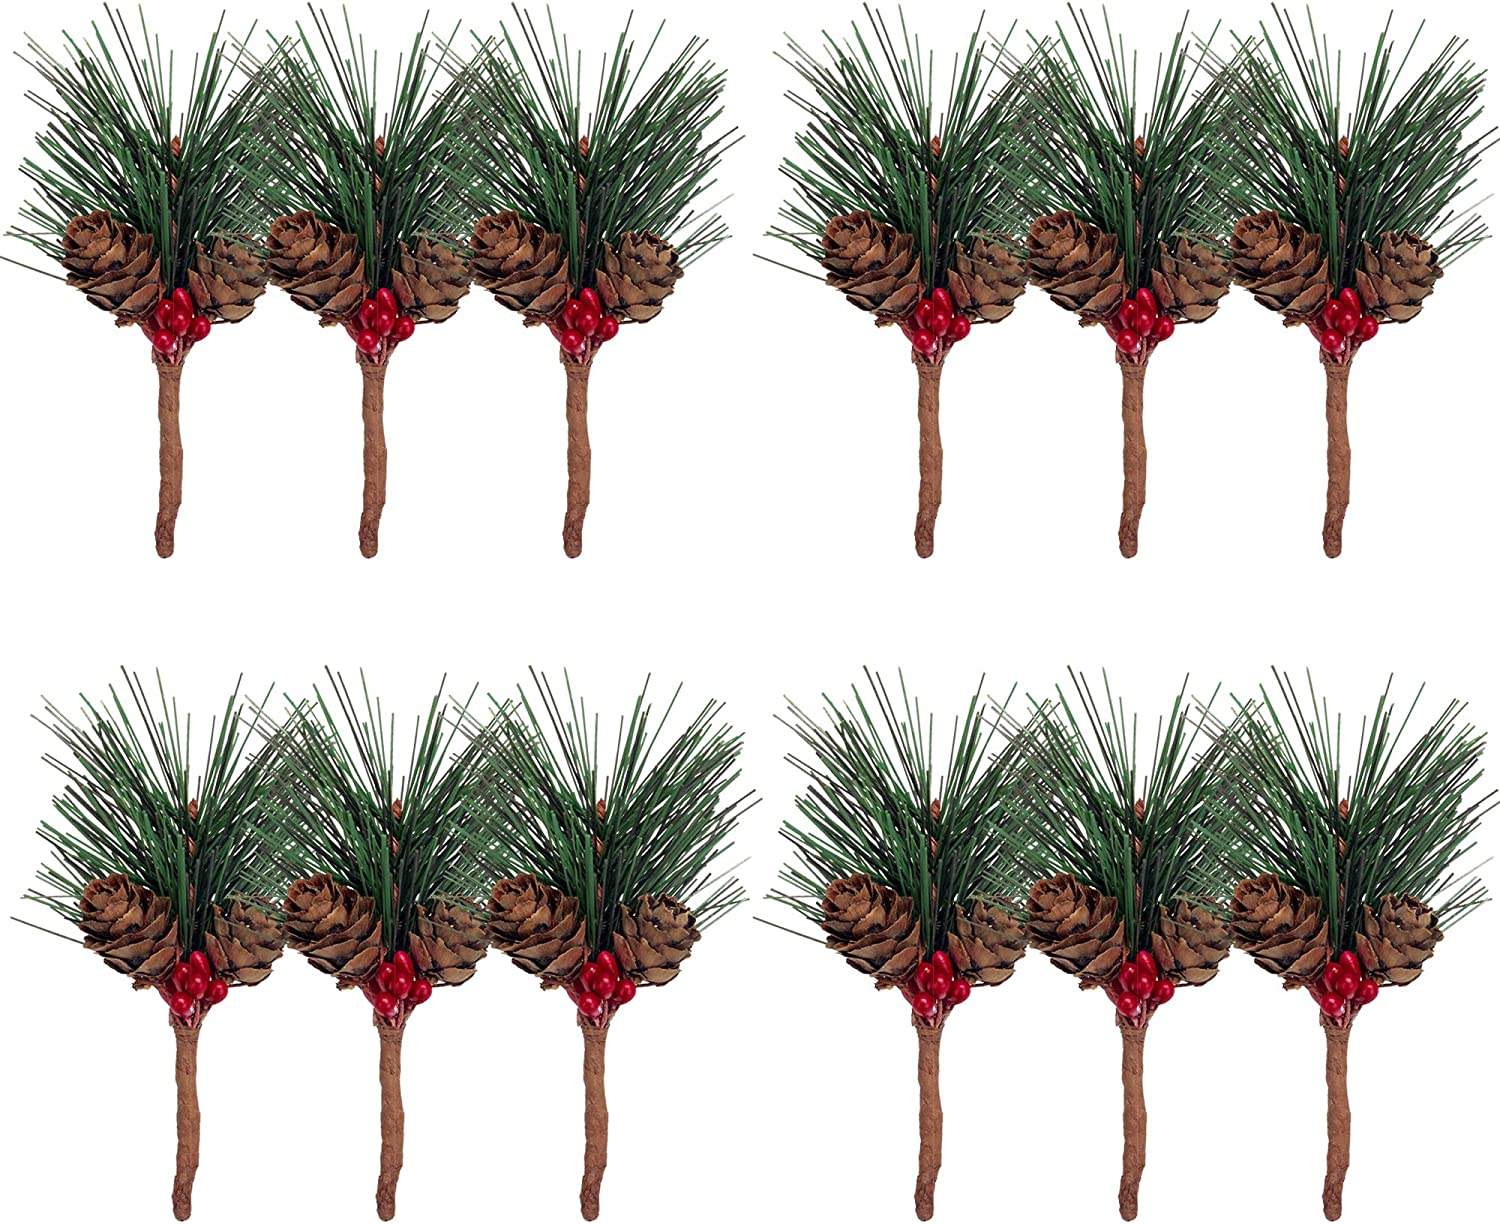 Felice Arts 12 pcs Artificial Pine Picks for Christmas, Mixed Small Fake Pine Needles Red Berries and Pinecones Simulated Plastic Bouquet for Christmas Decor Gift Wrappings Greenery Garland